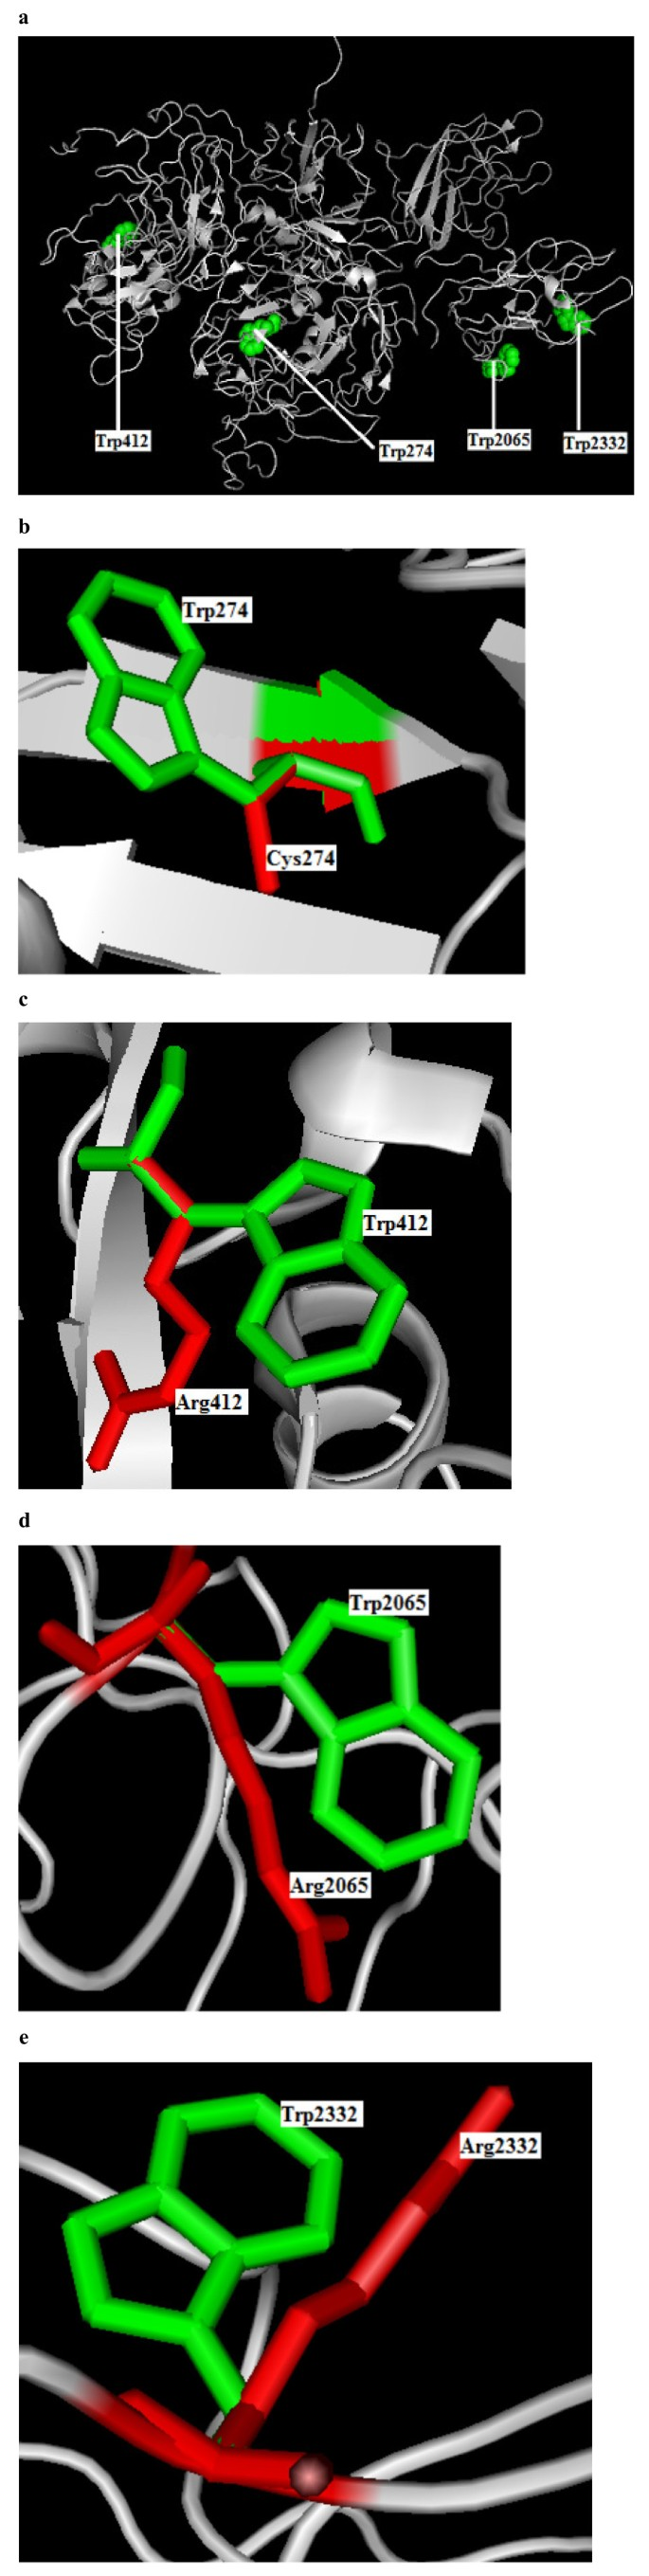 In Silico profiling of deleterious amino acid substitutions